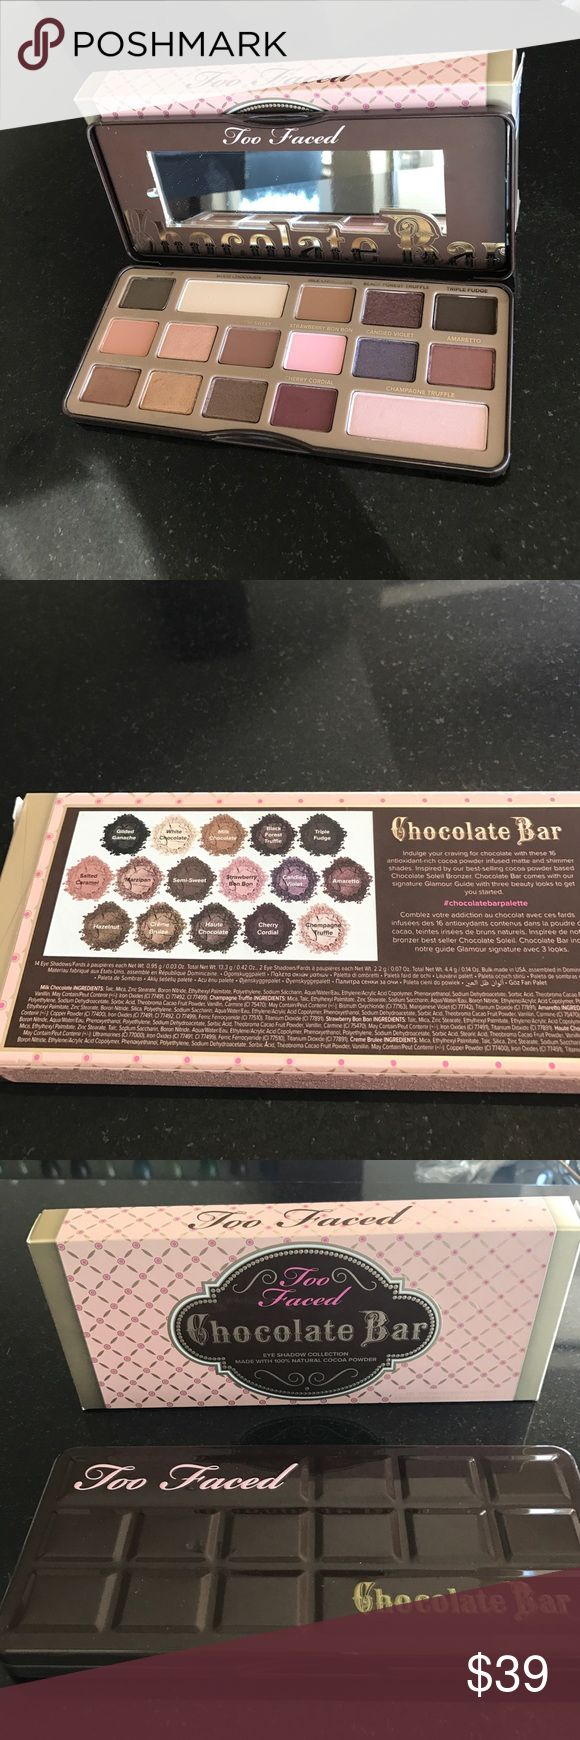 NEW Two Faced Eyeshadow collection Chocolate Bar Brand New! Never used- Two Faced Eyeshadow Collection 16 shades see picture for details Two Faced Makeup Eyeshadow